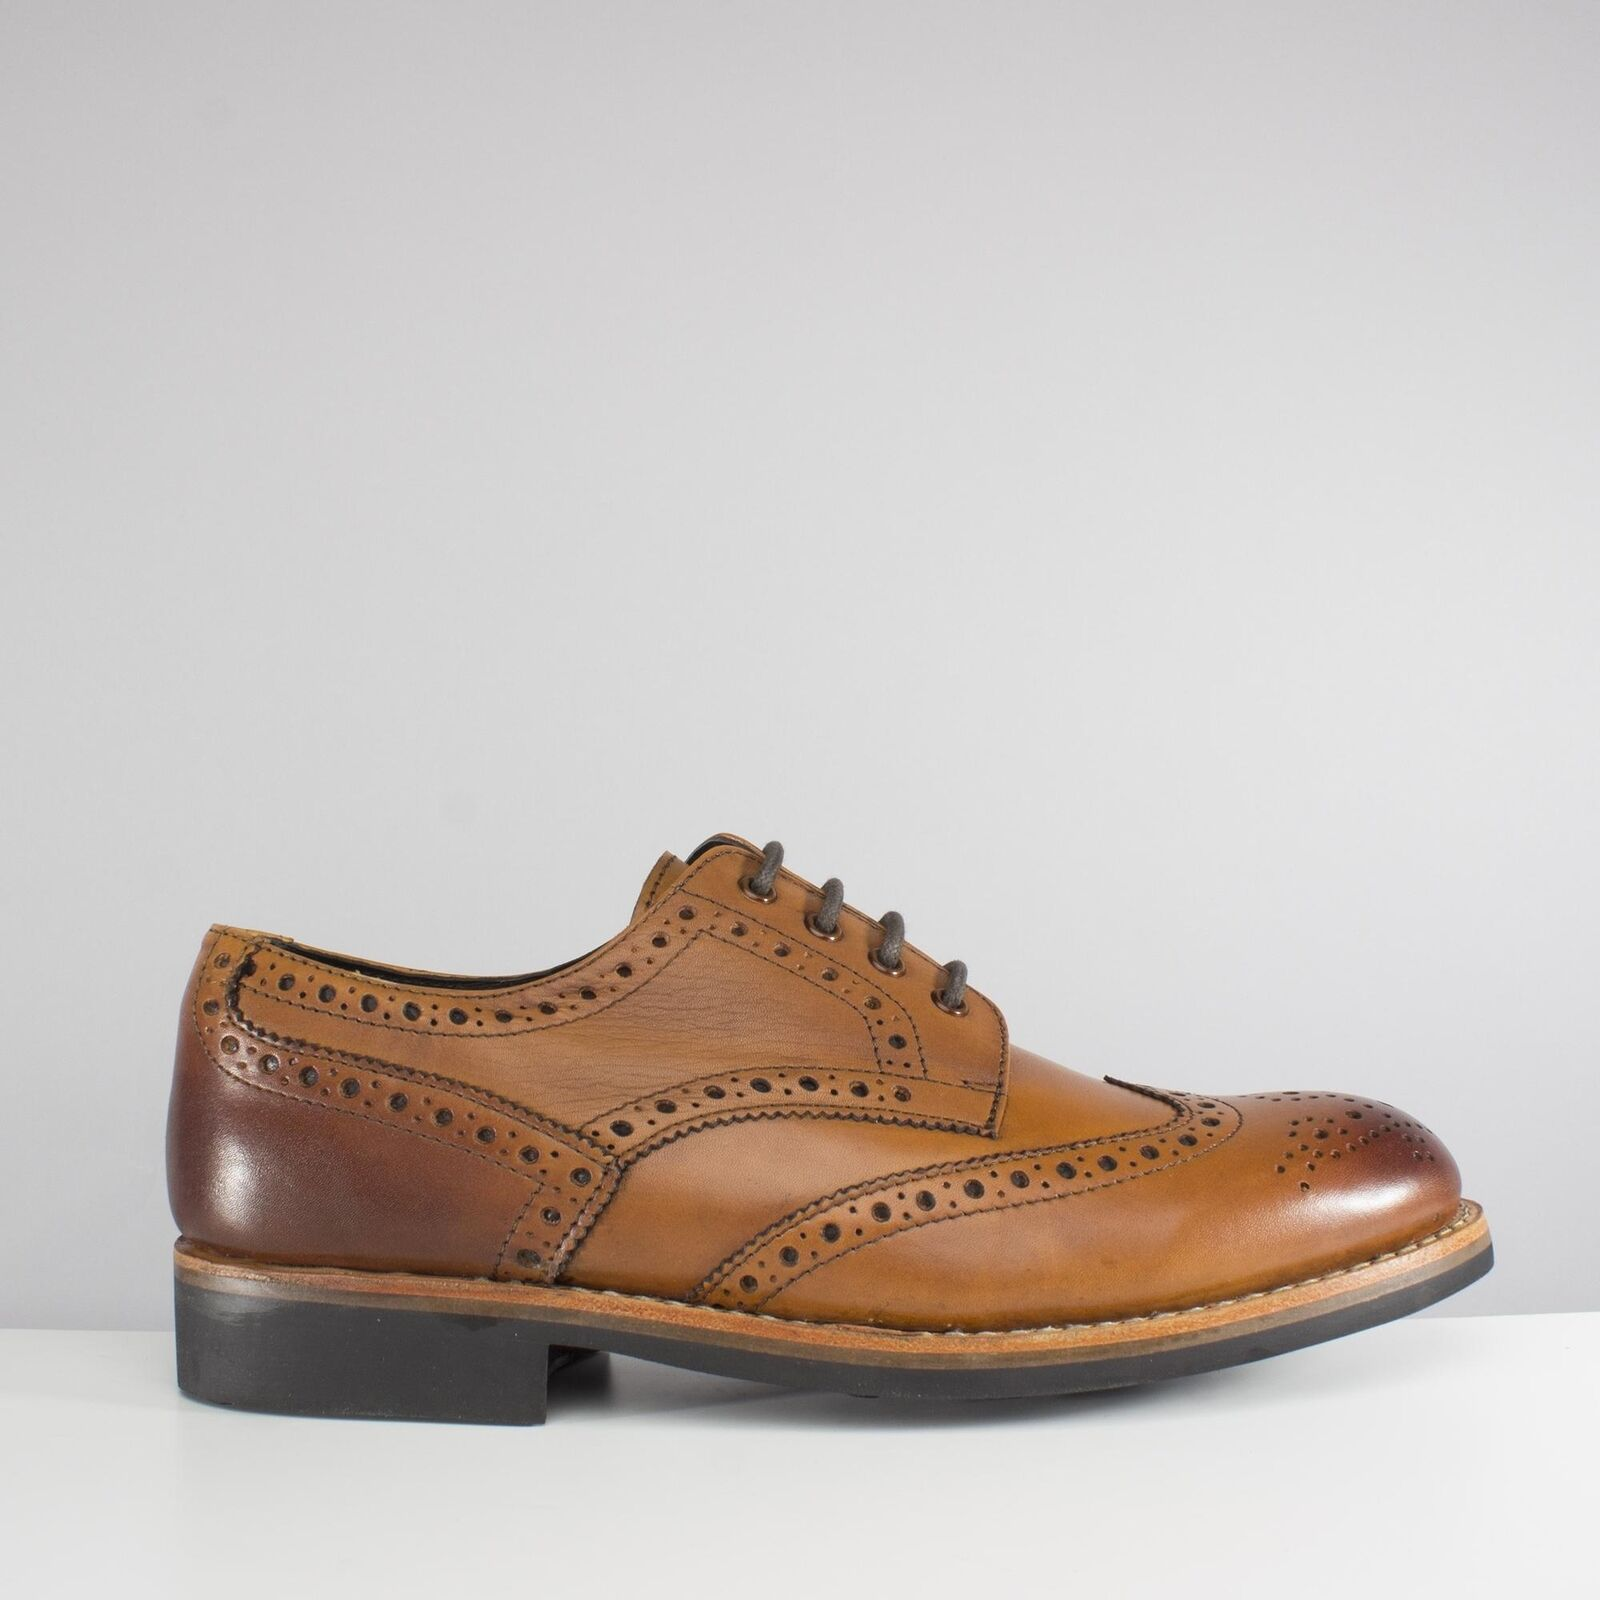 Catesby shoesmakers EDVIN Mens Formal Office Smart Lace Up Derby Brogue shoes Tan